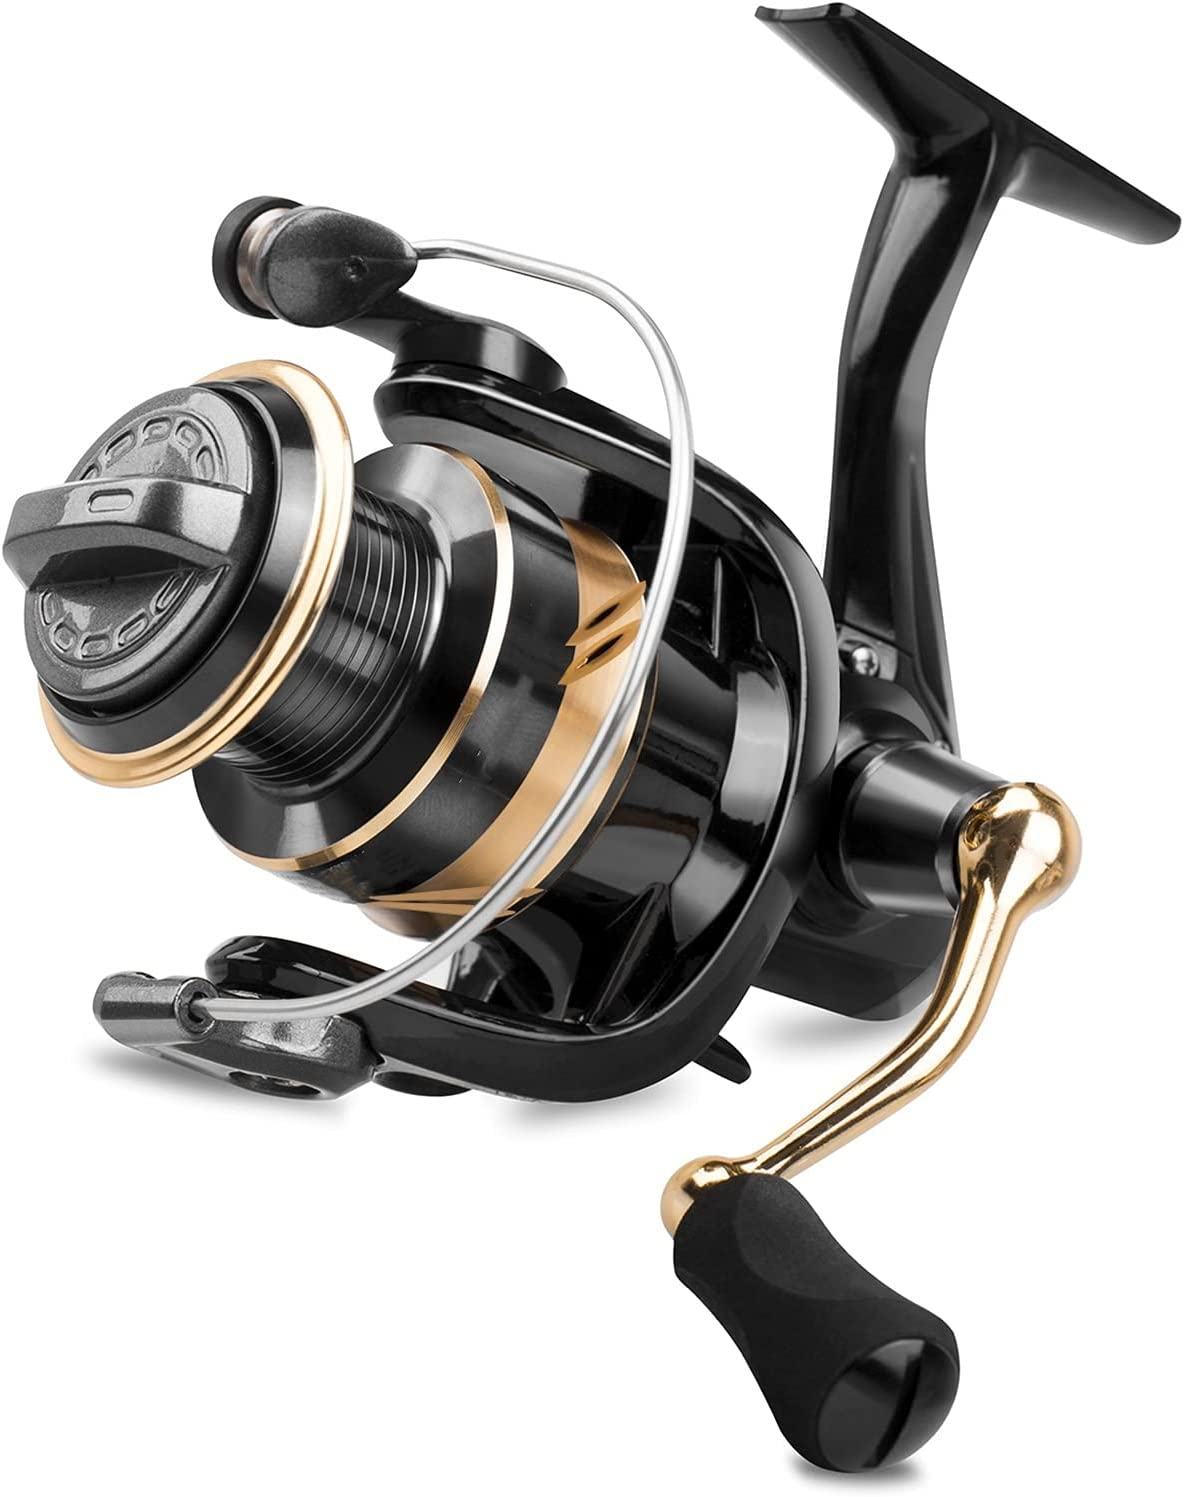 Fishing Reels Rotating Indianapolis Mall Reel Graphite 5.0:1 Gear Time sale 8BB Body